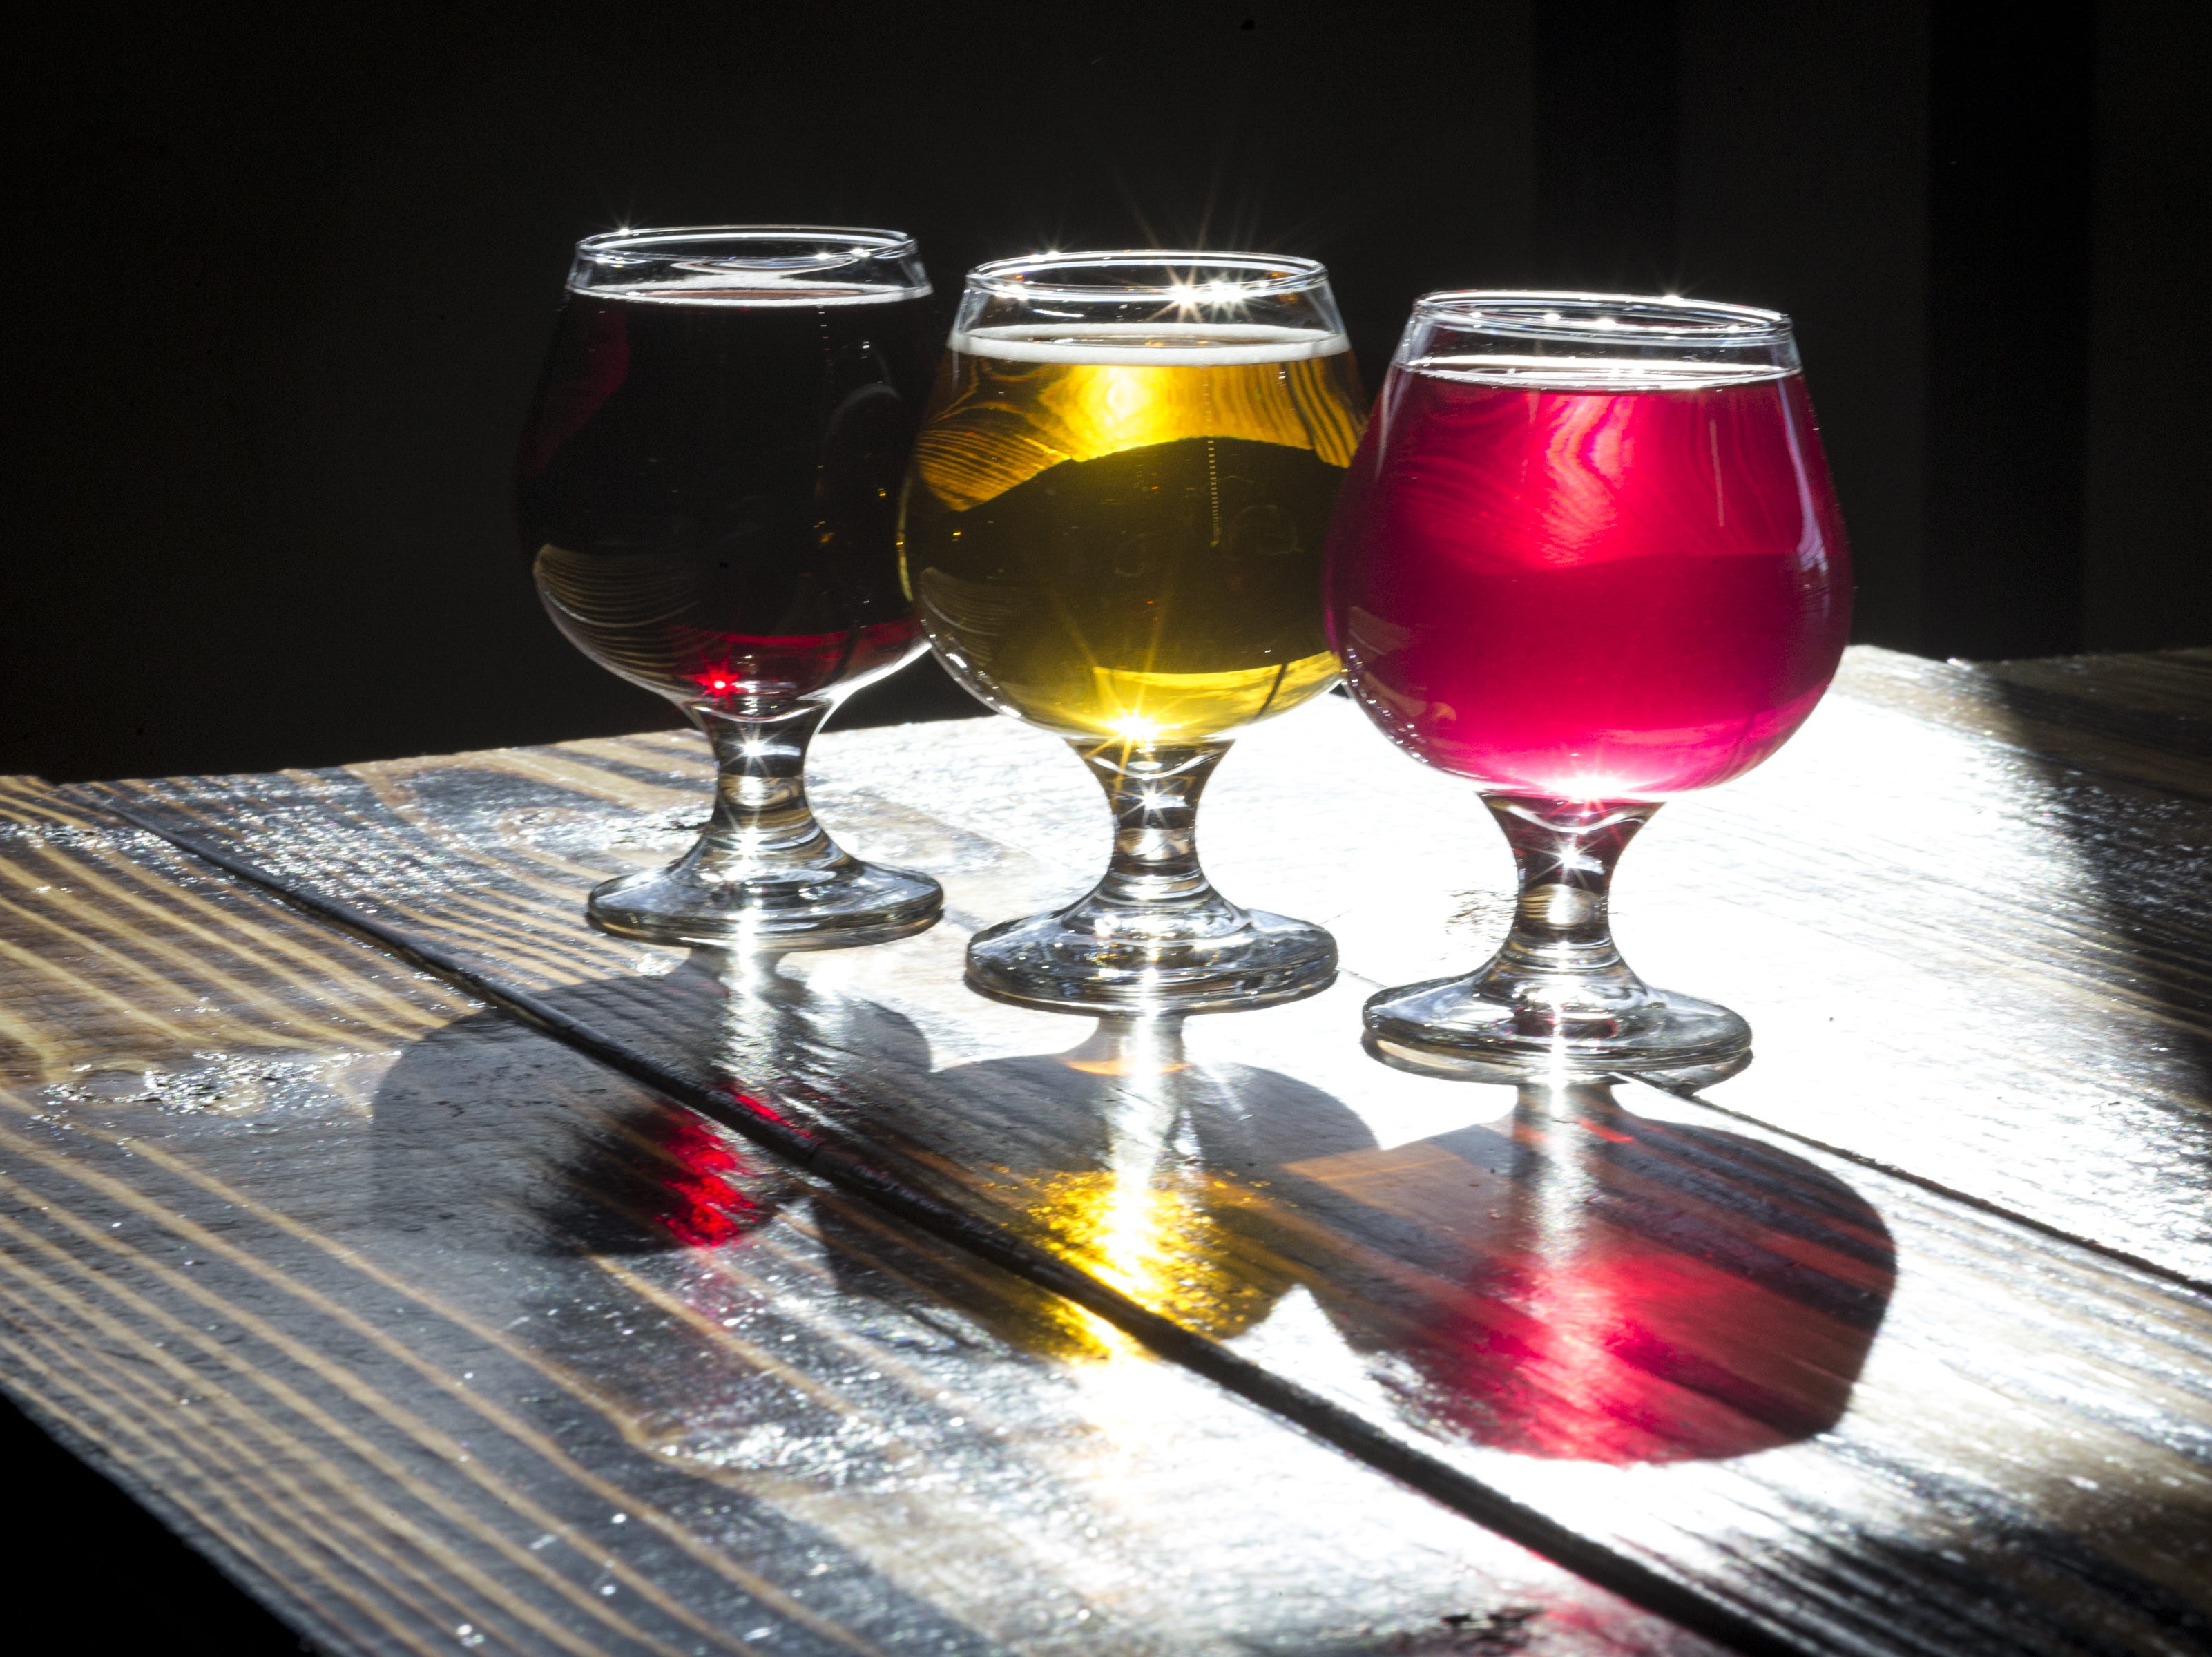 Cider Corps is expanding in downtown Mesa. Here's what's coming to the cidery